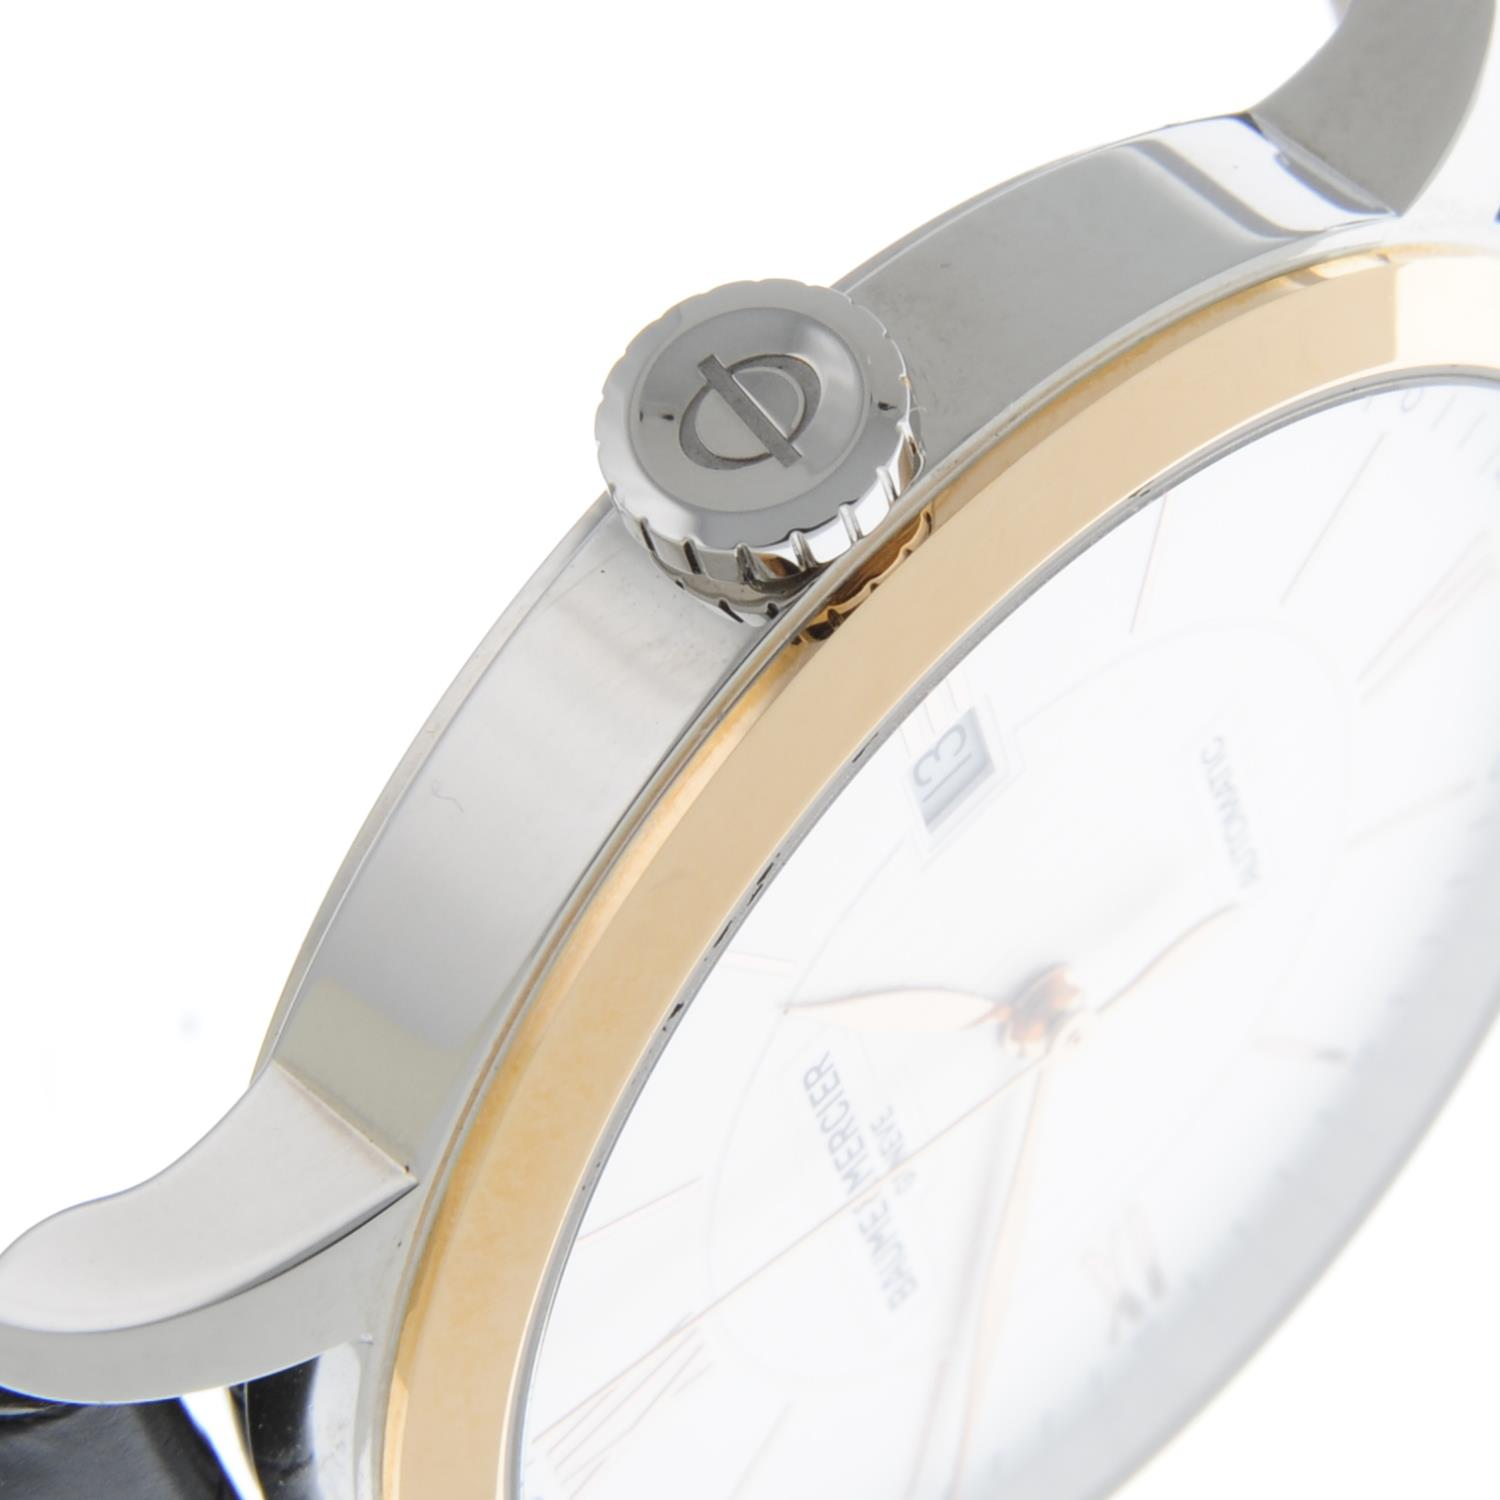 BAUME & MERCIER - a stainless steel Classima wrist watch. - Image 5 of 6